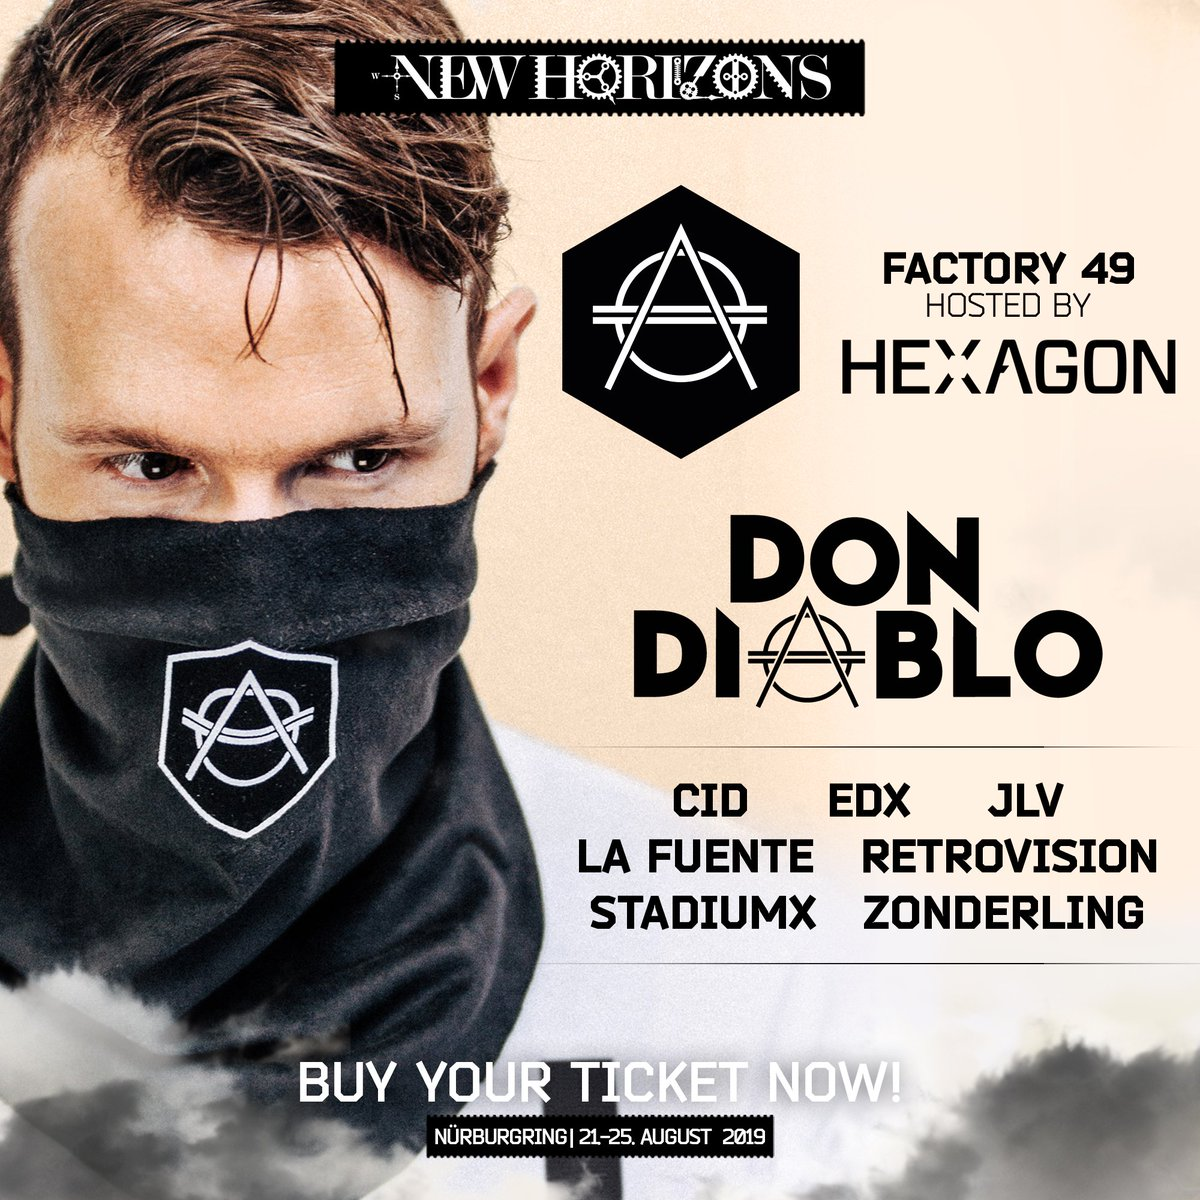 VERY excited to announce the lineup for our @HexagonHQ stage at New Horizons! 🔥🔥 Will YOU be there?! http://tinyurl.com/DDHorizons